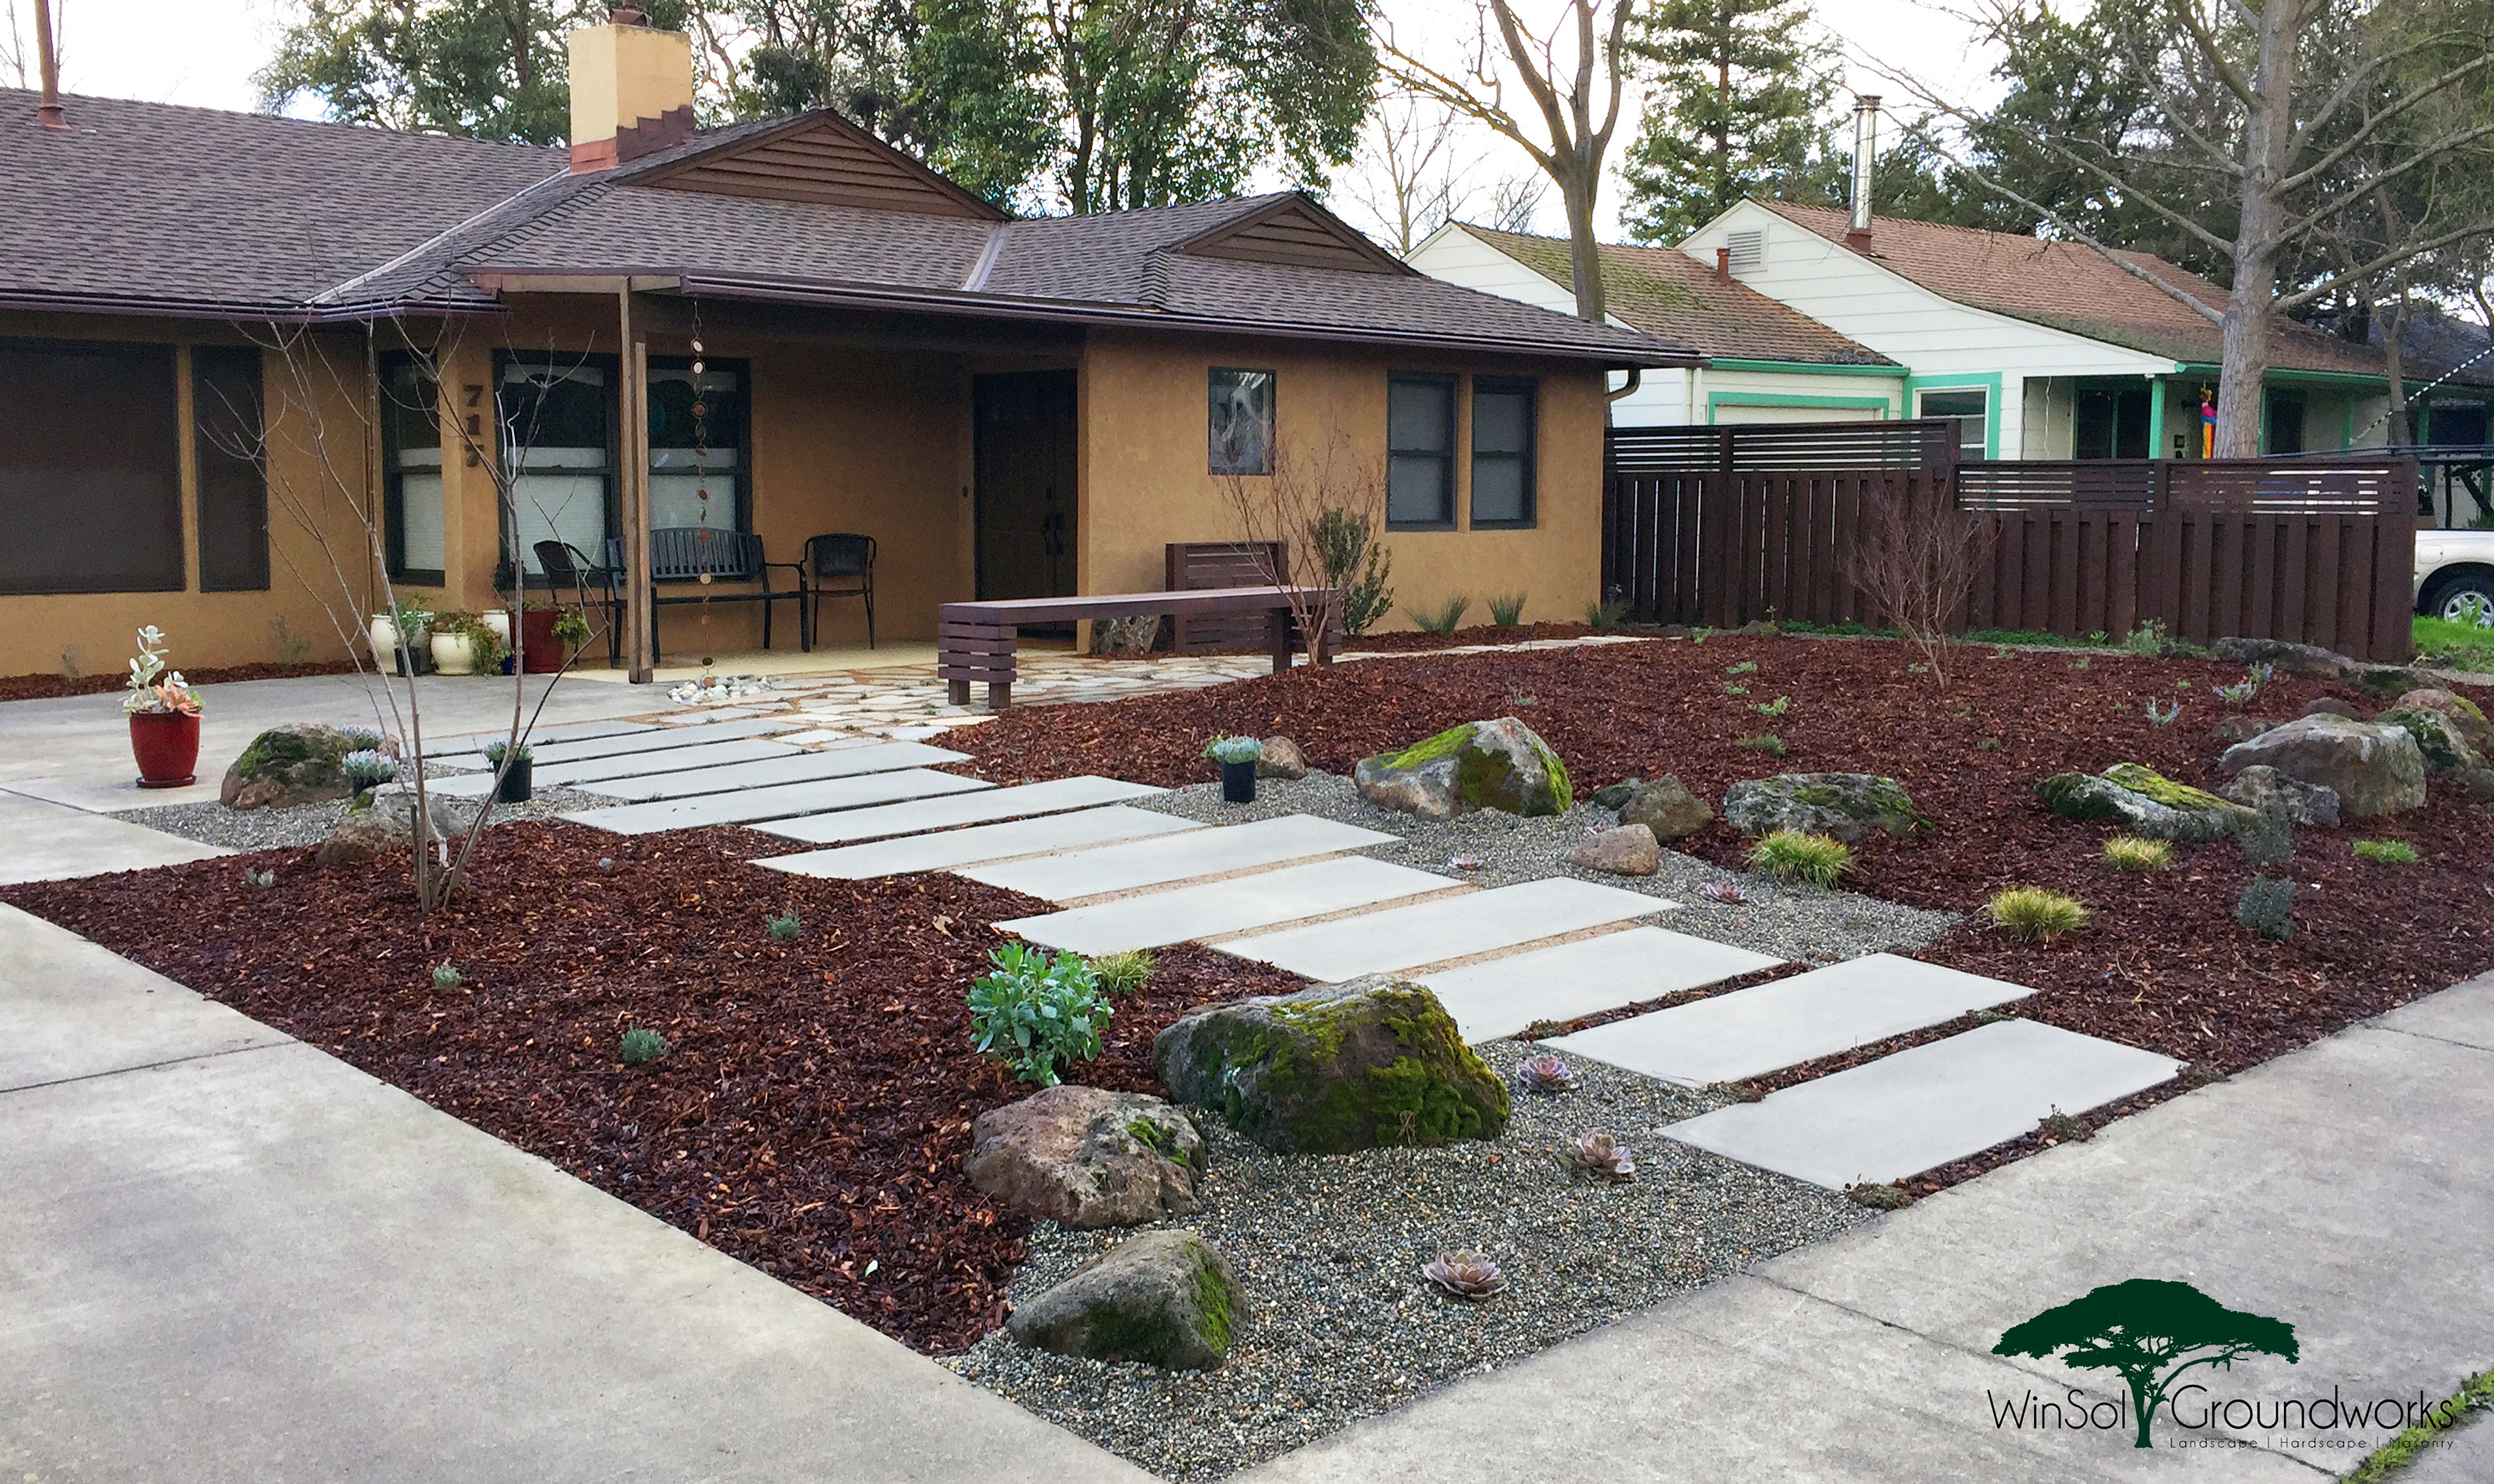 Winsol groundworks sacramento landscaping zero drought for No maintenance backyard